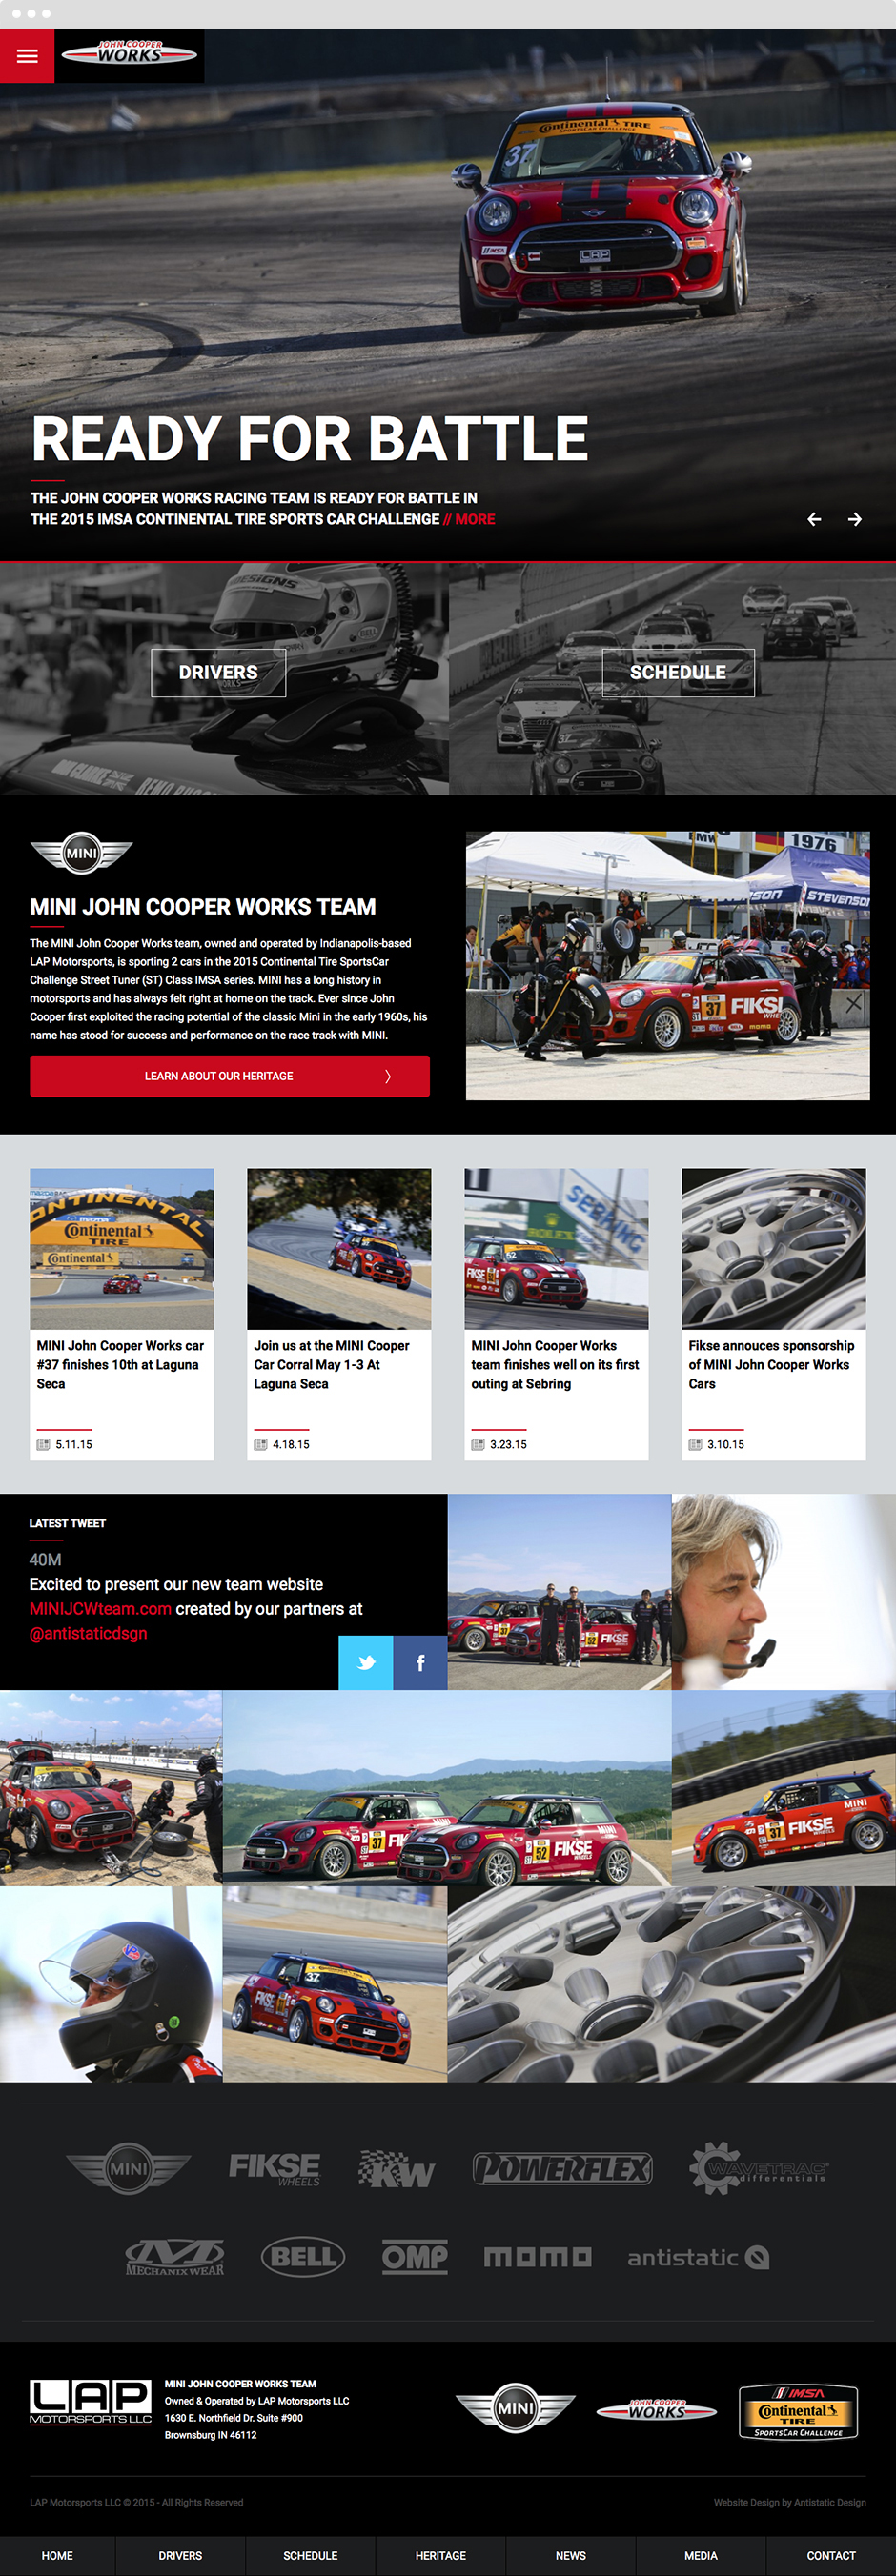 MINI John Cooper Works Team Website Design & Development